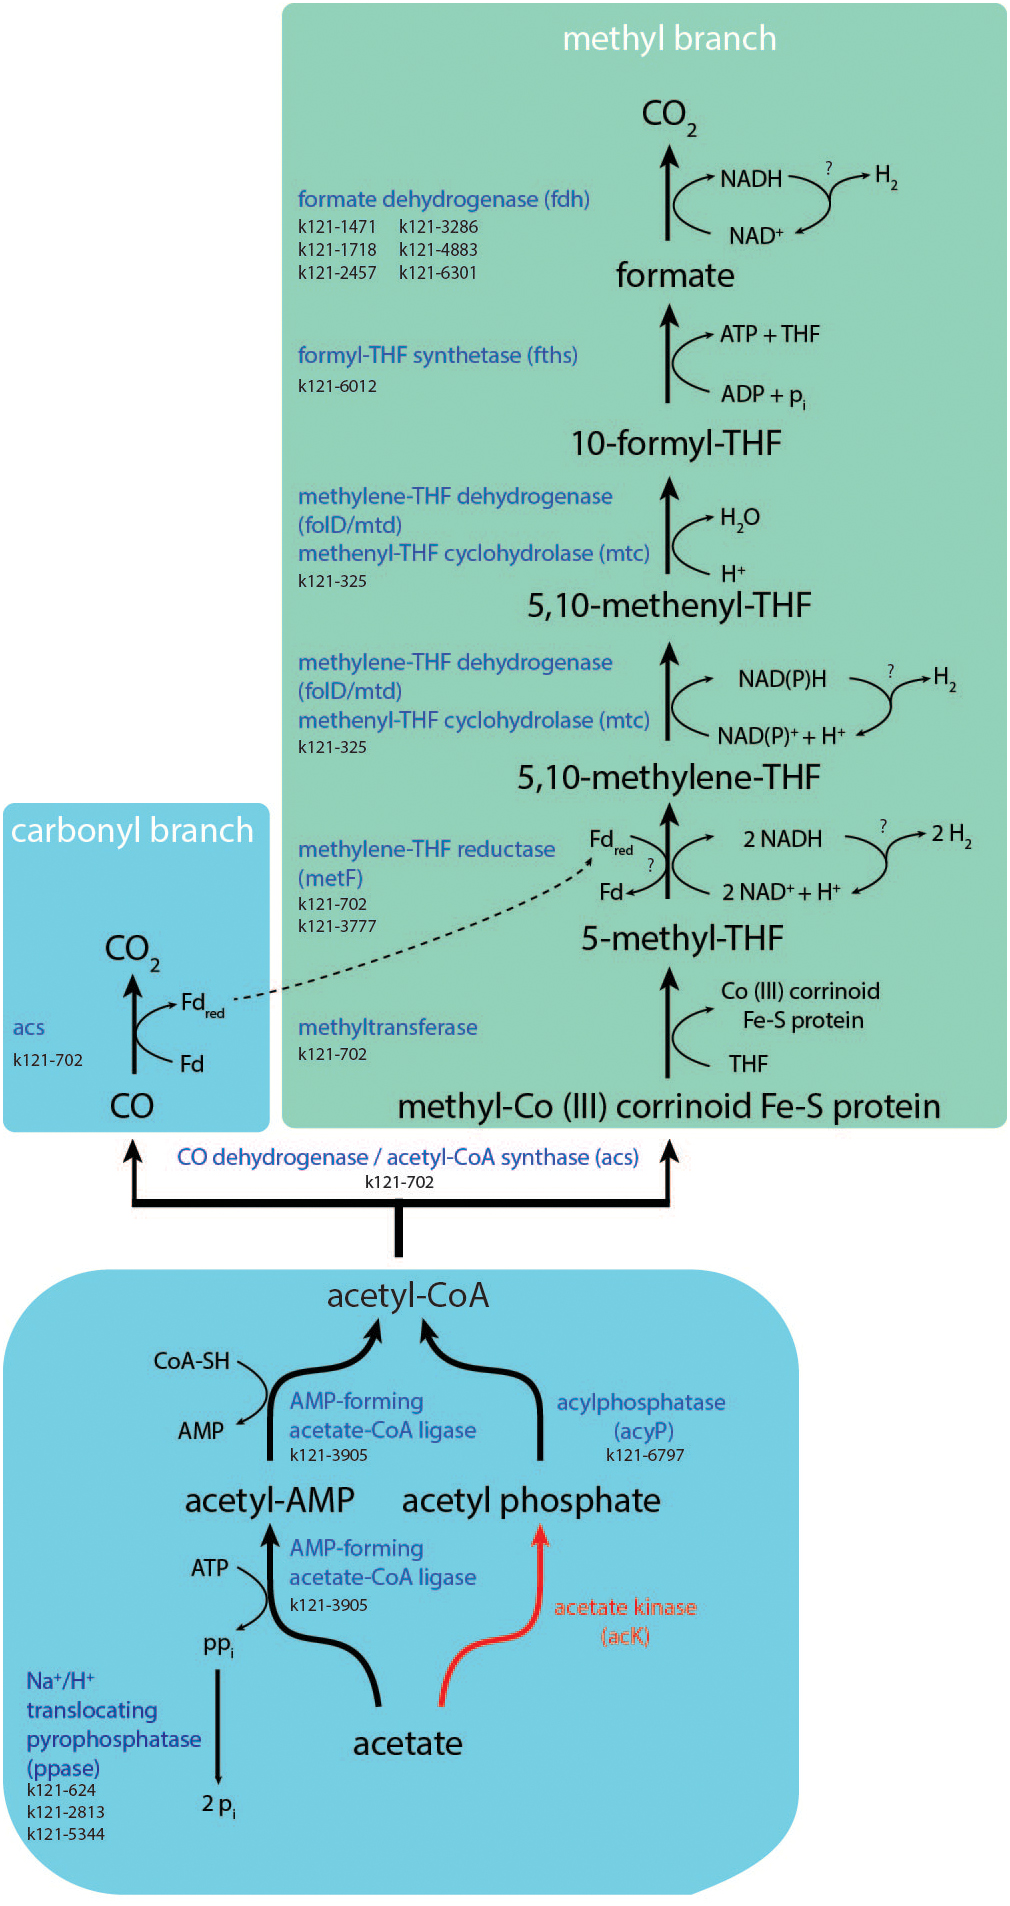 Frontiers | Metabolism and Occurrence of Methanogenic and Sulfate